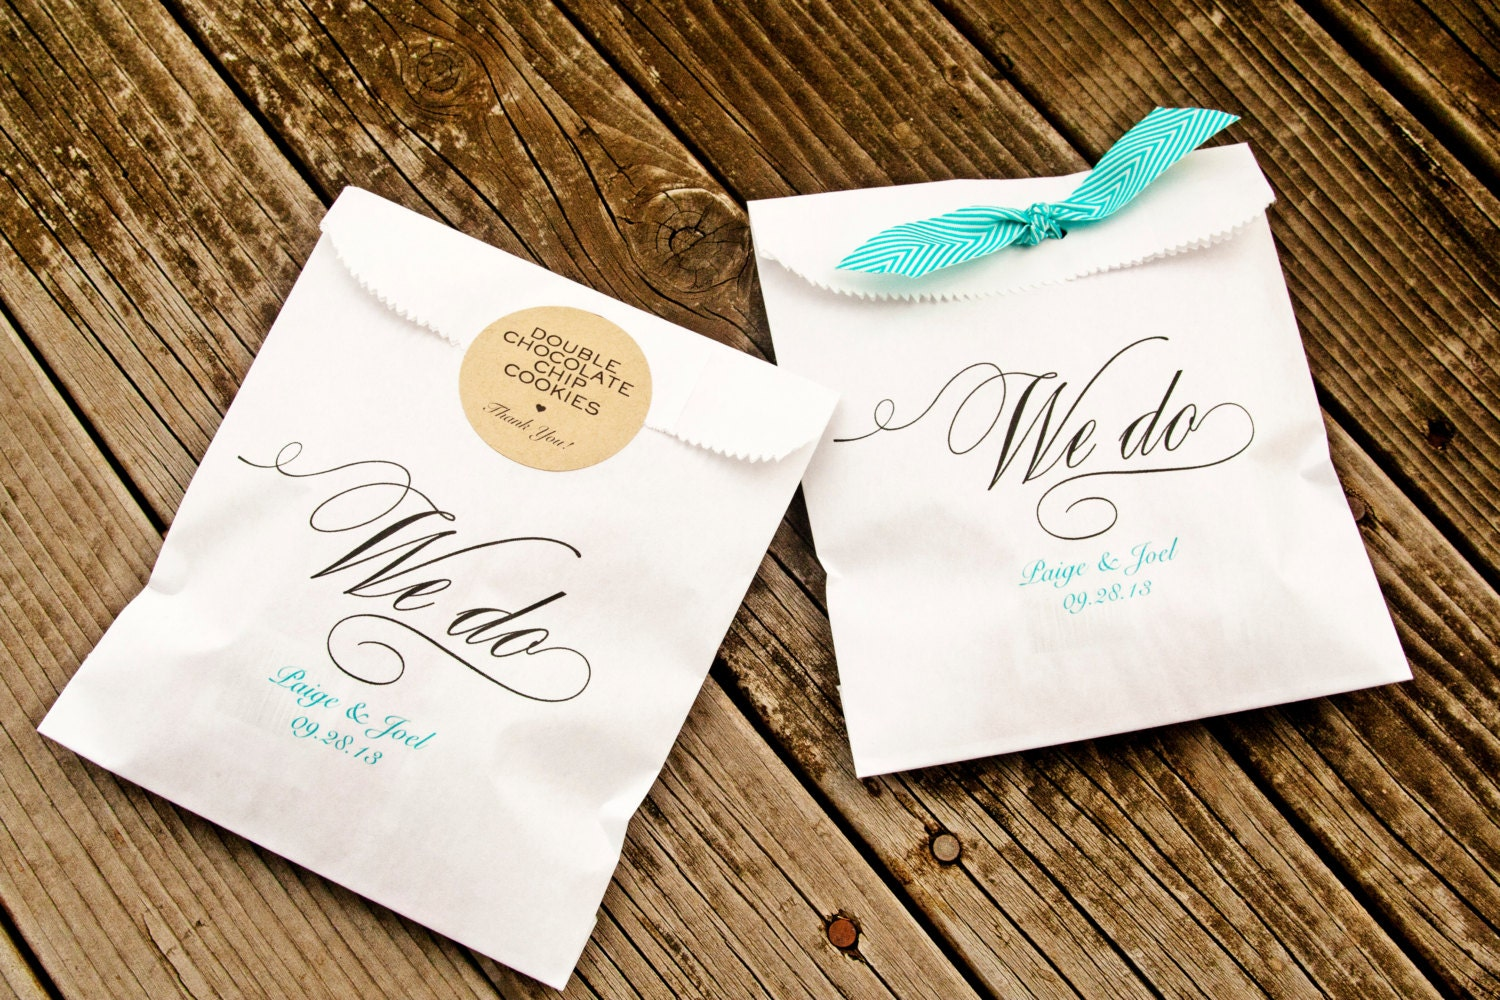 Wedding Favor Bags We Do Style Candy Buffet Bag Wax By Mavora